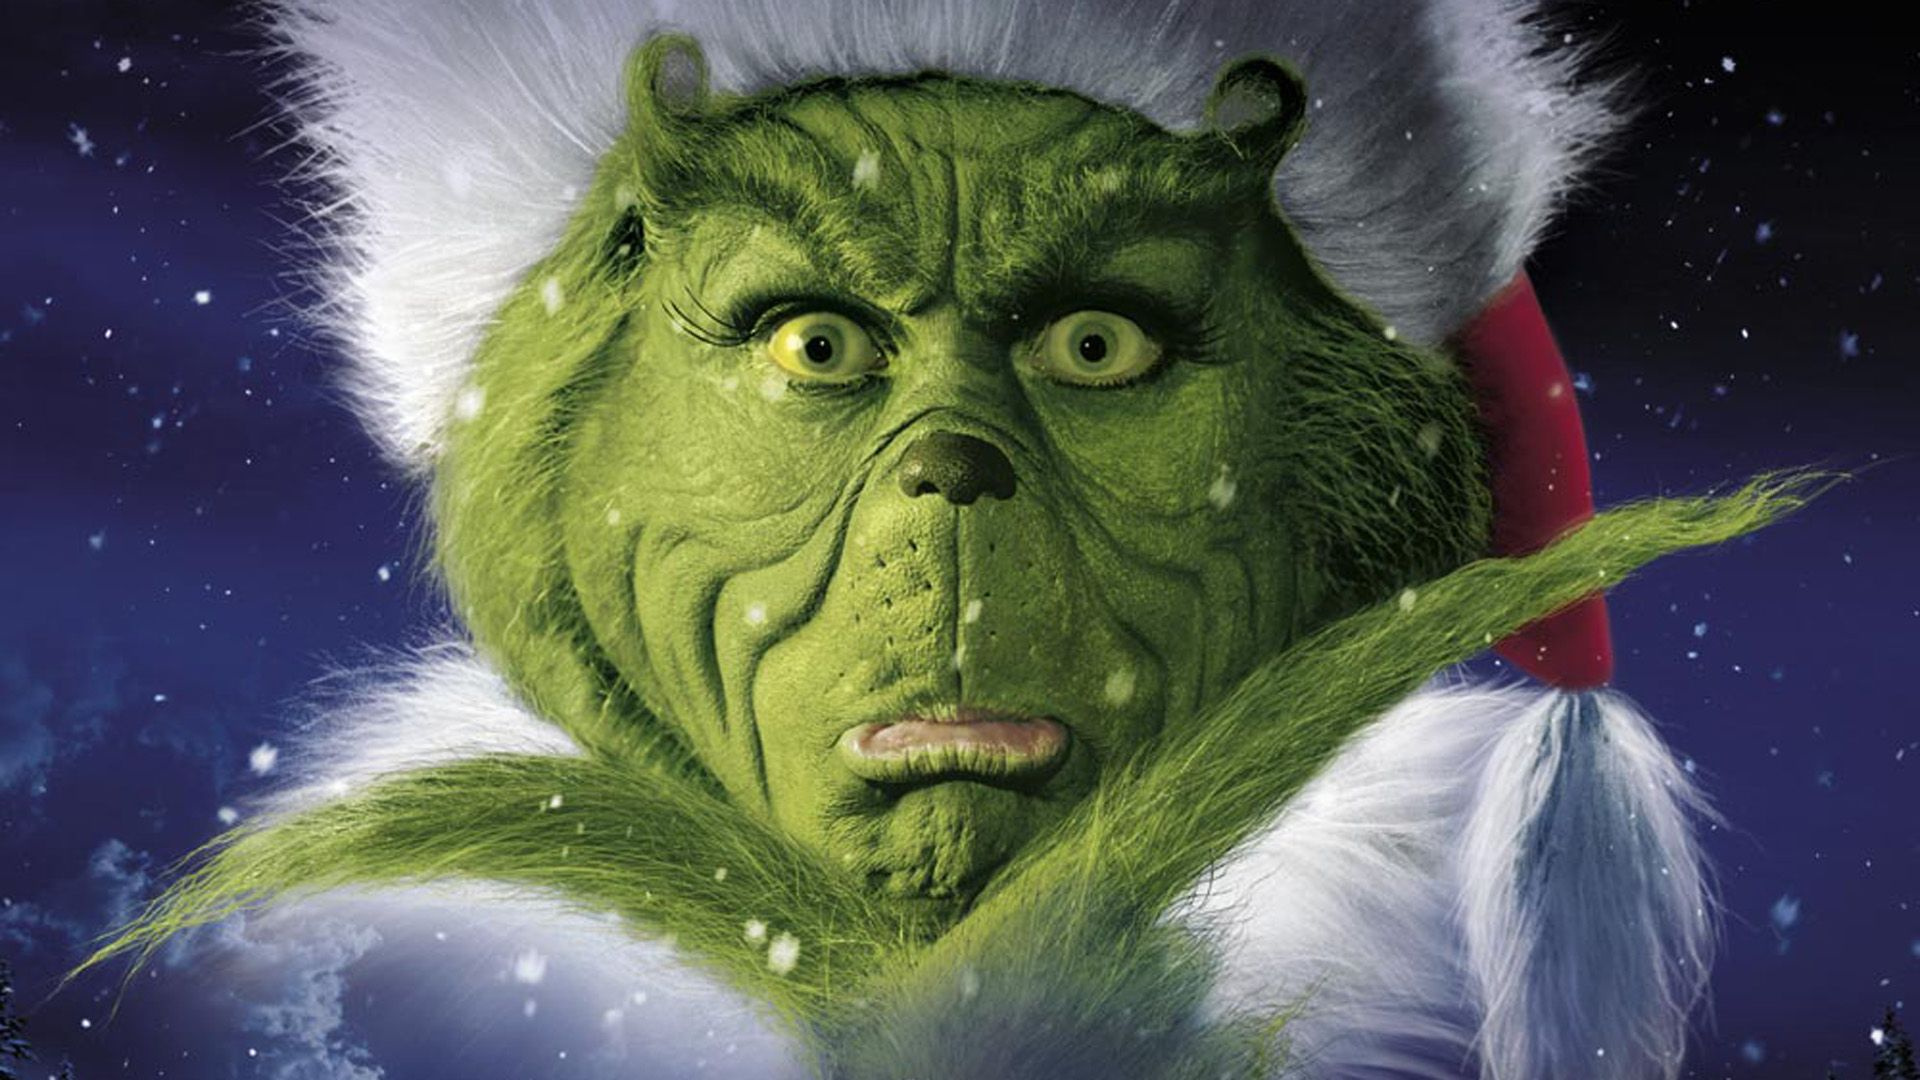 meet the man who stole christmas for ps4 fans push square